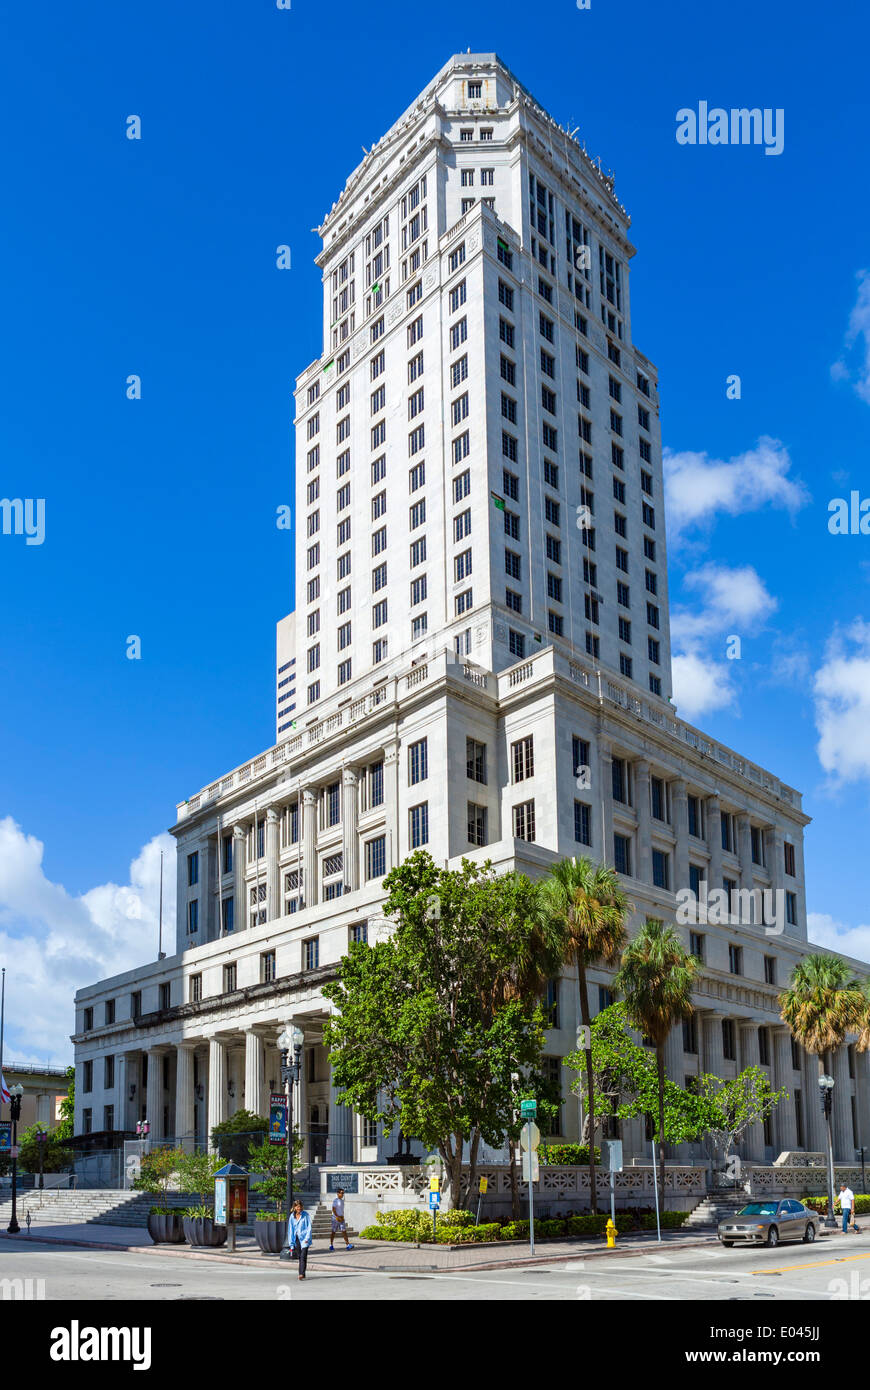 Miami-Dade County Courthouse, West Flagler Street, Miami, Florida, USA - Stock Image